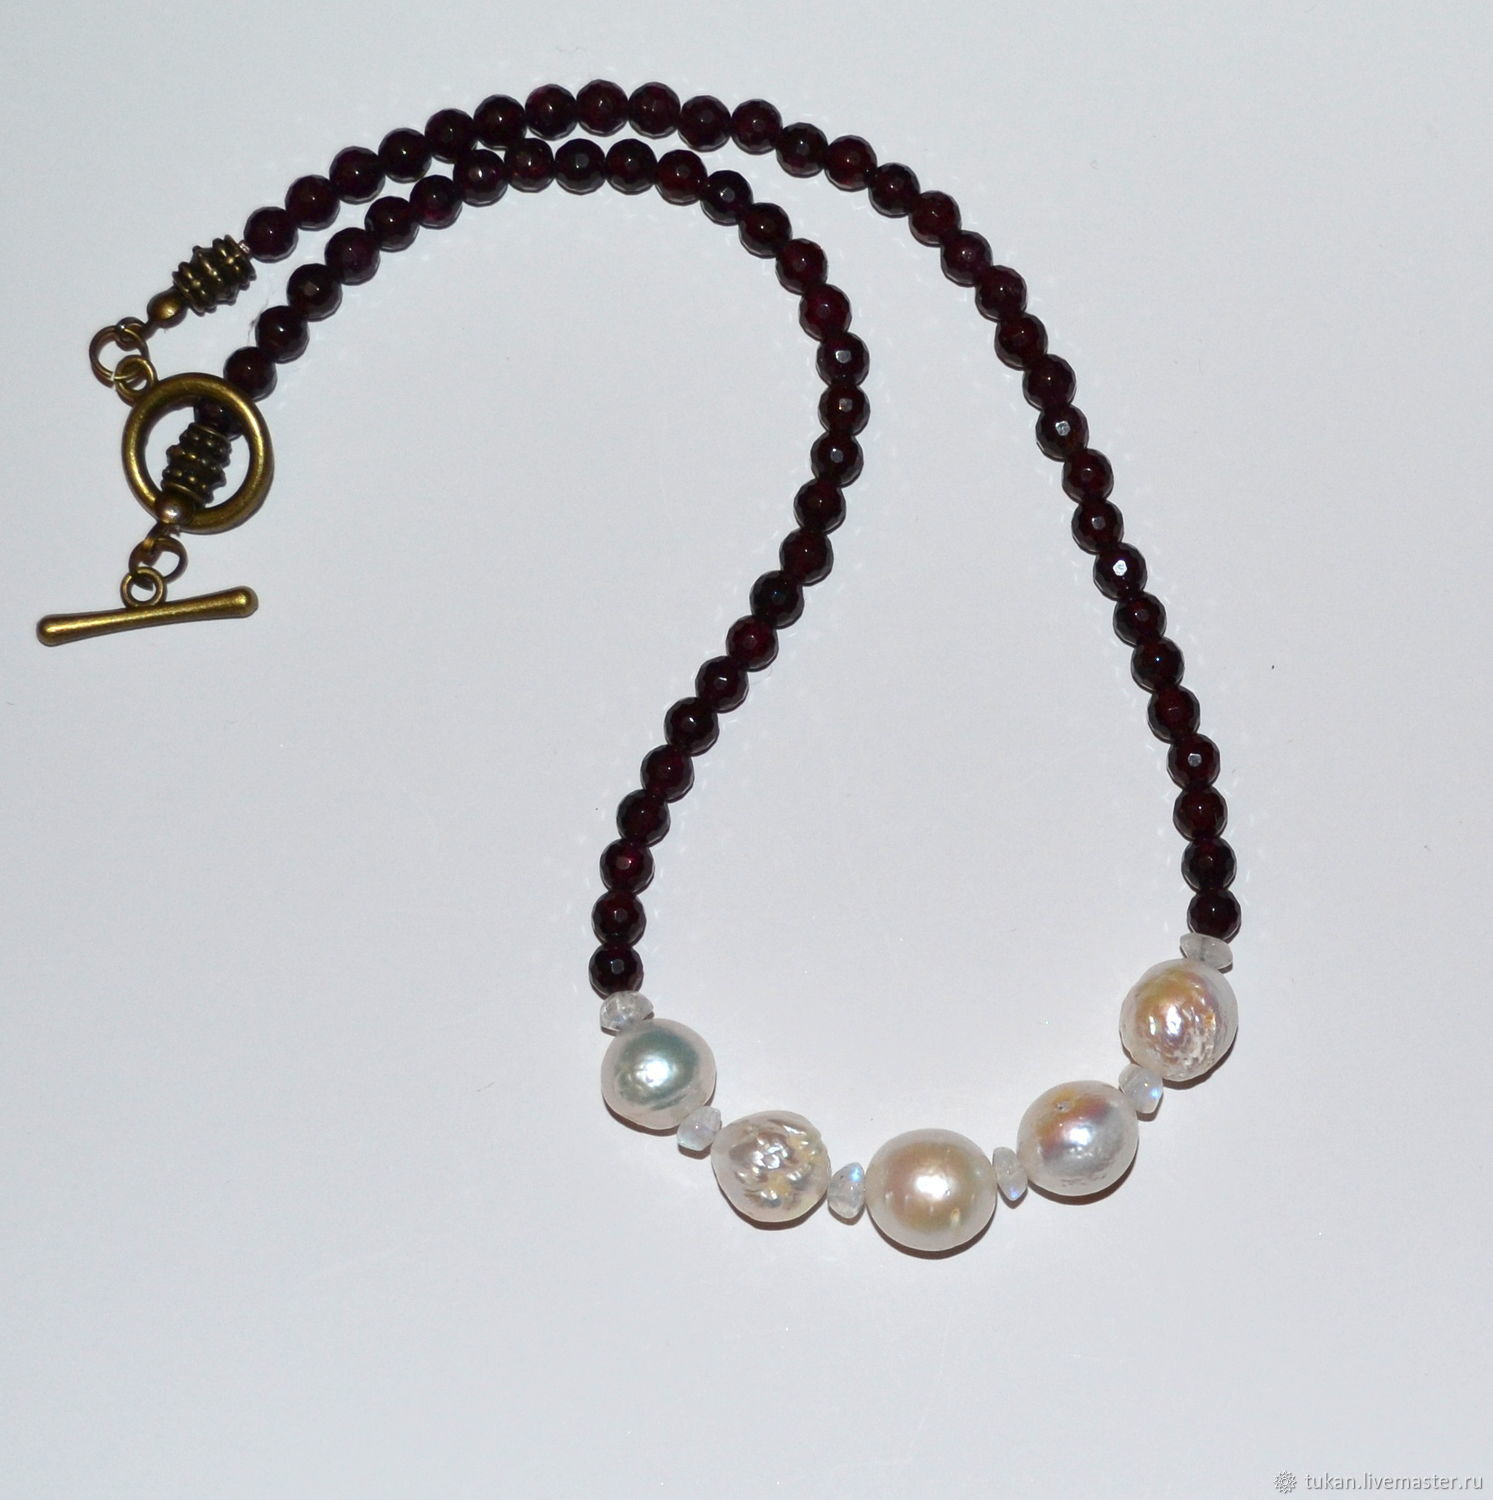 Necklaces & Beads handmade. Livemaster - handmade. Buy Necklace of garnet with pearls.Handmade, garnet necklace